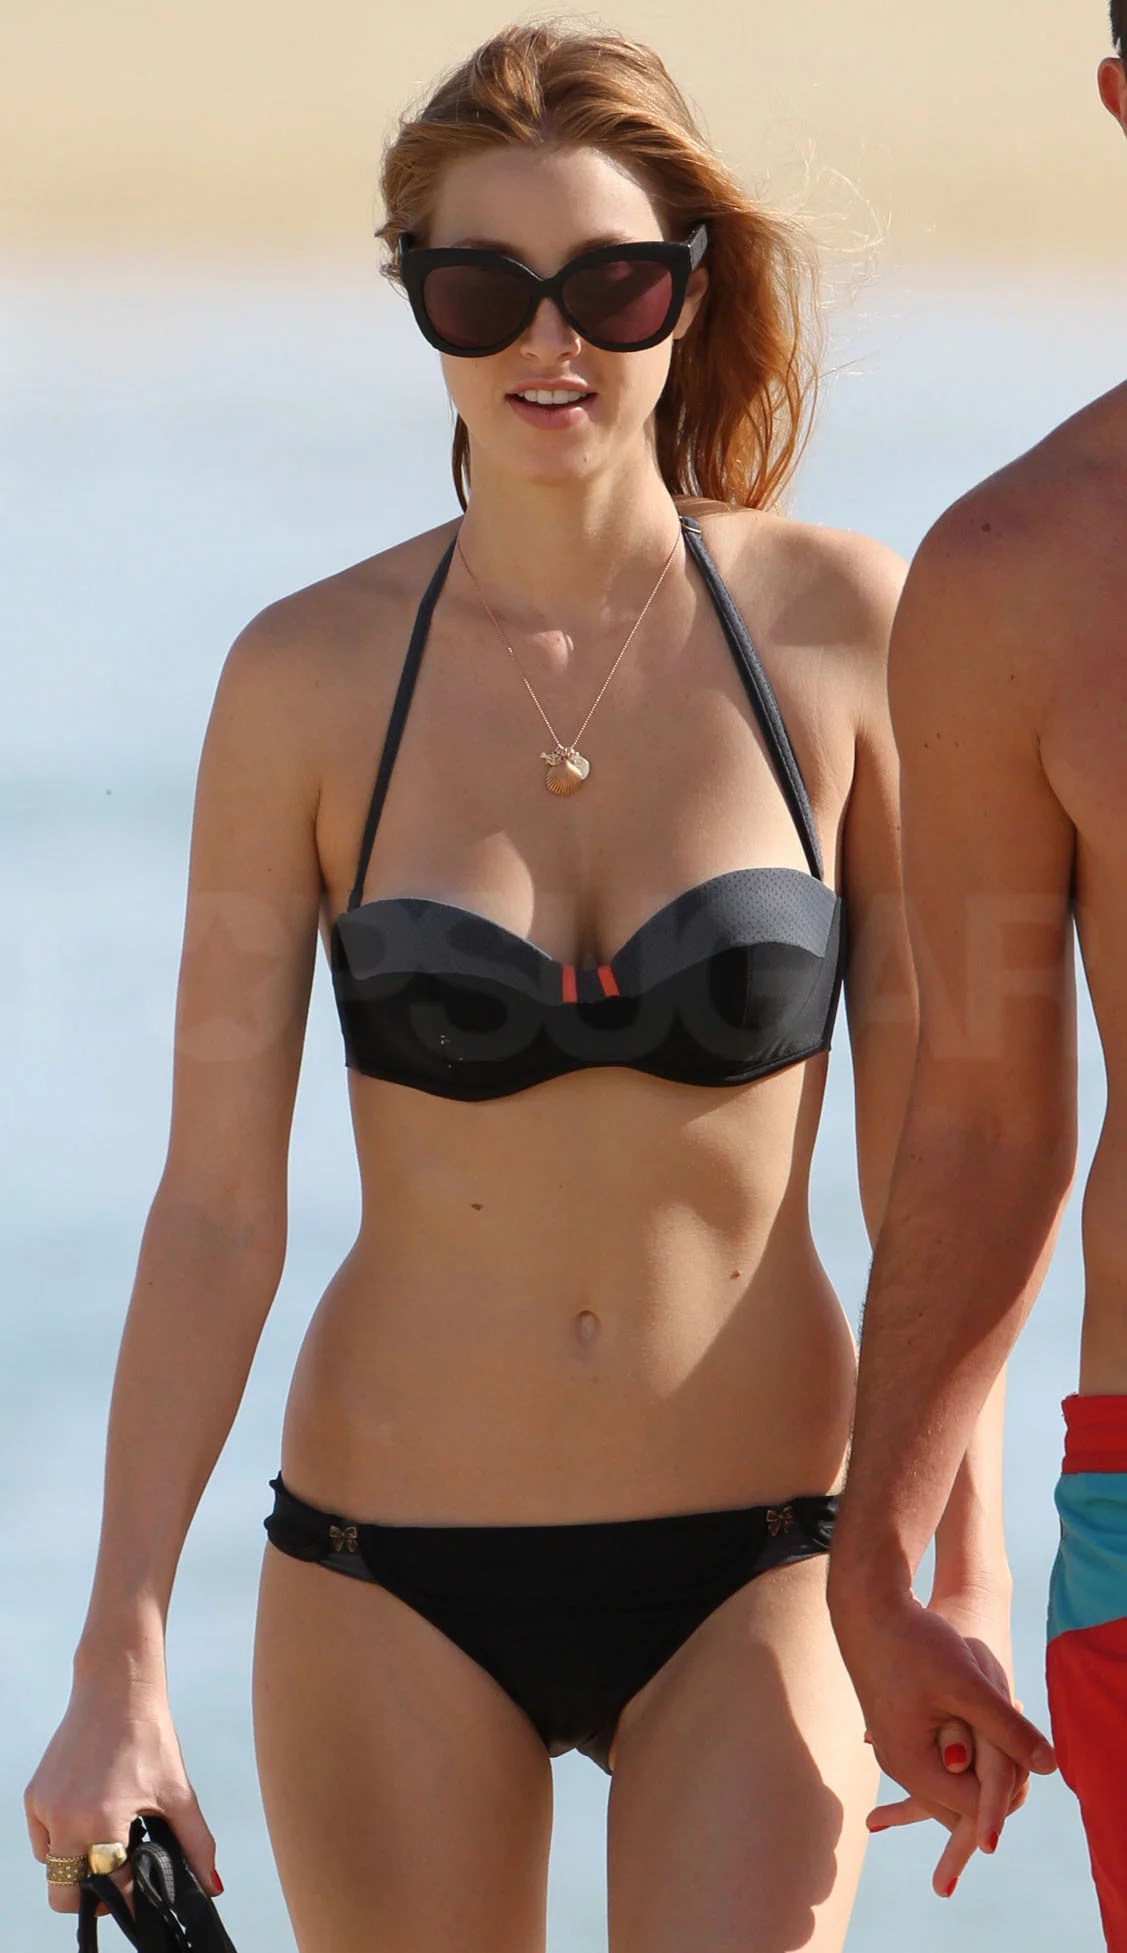 10 Pics Of Shirtless Celebs At The Beach J 14